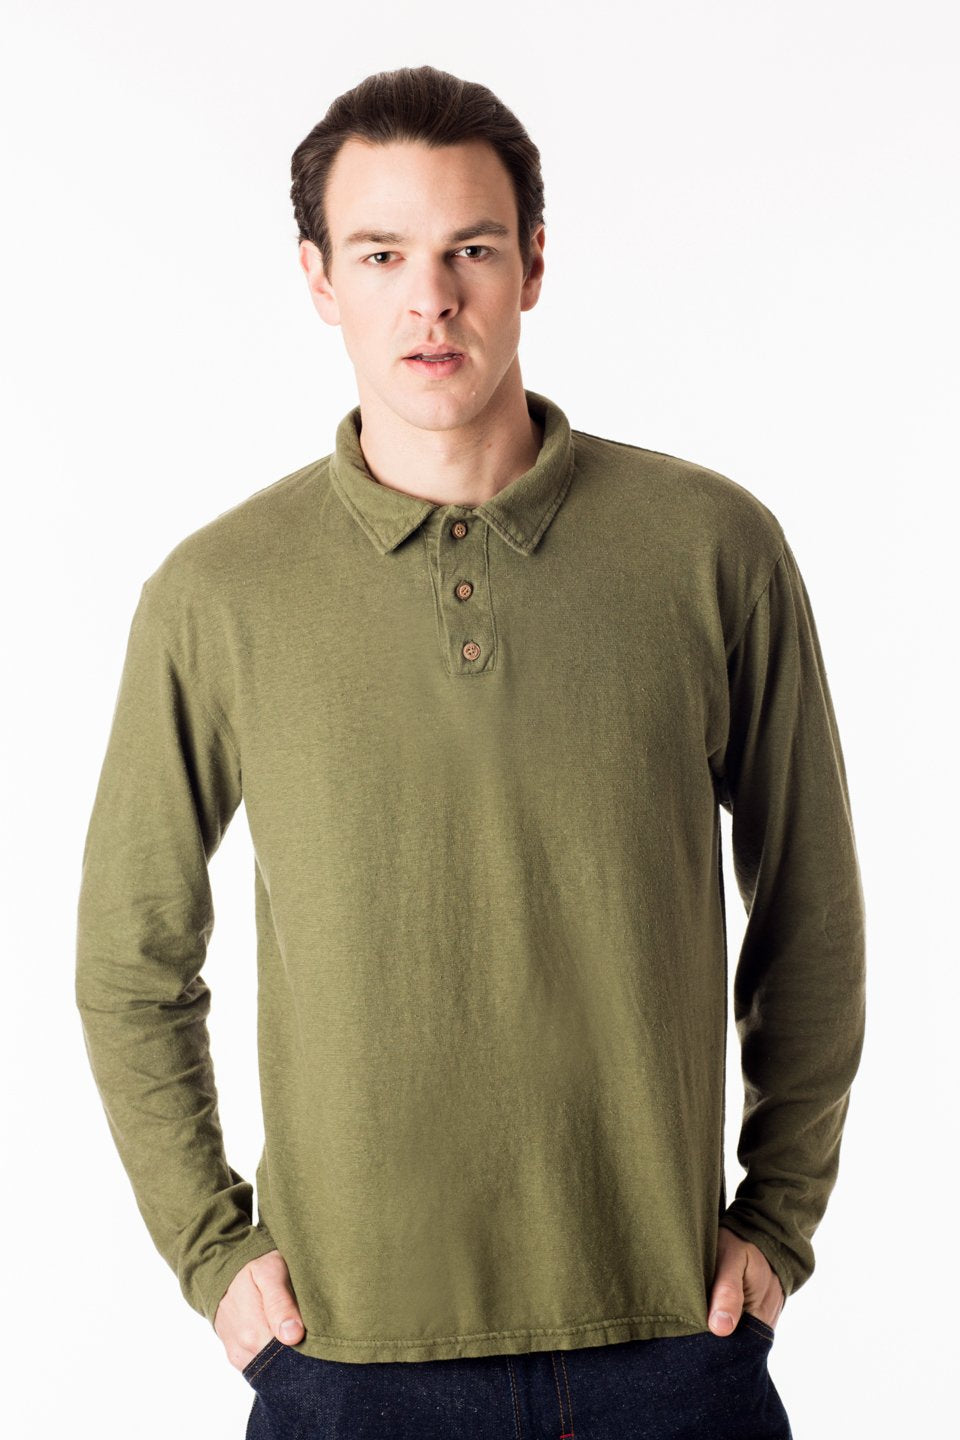 long sleeve mens polo shirt with three button closure at the neck and a short collar in a light green